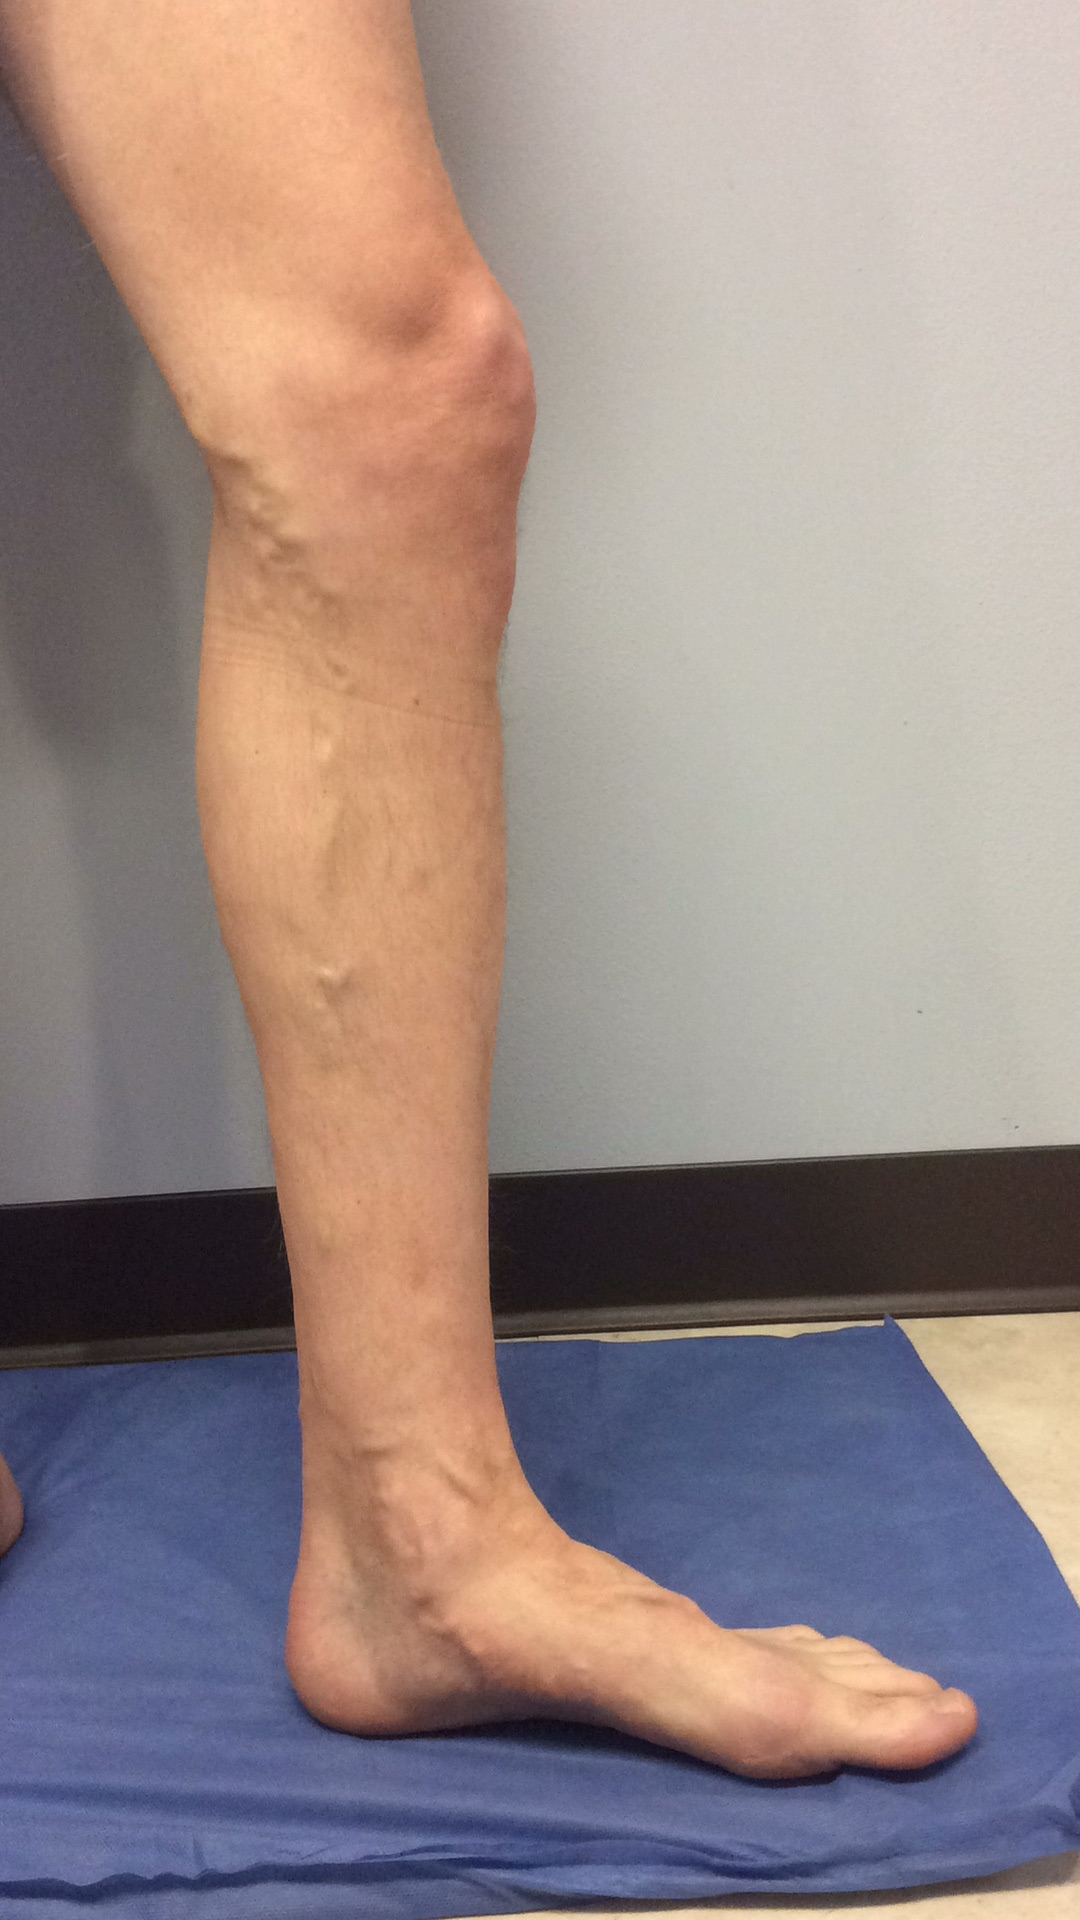 Before vein treatment image for varicose veins